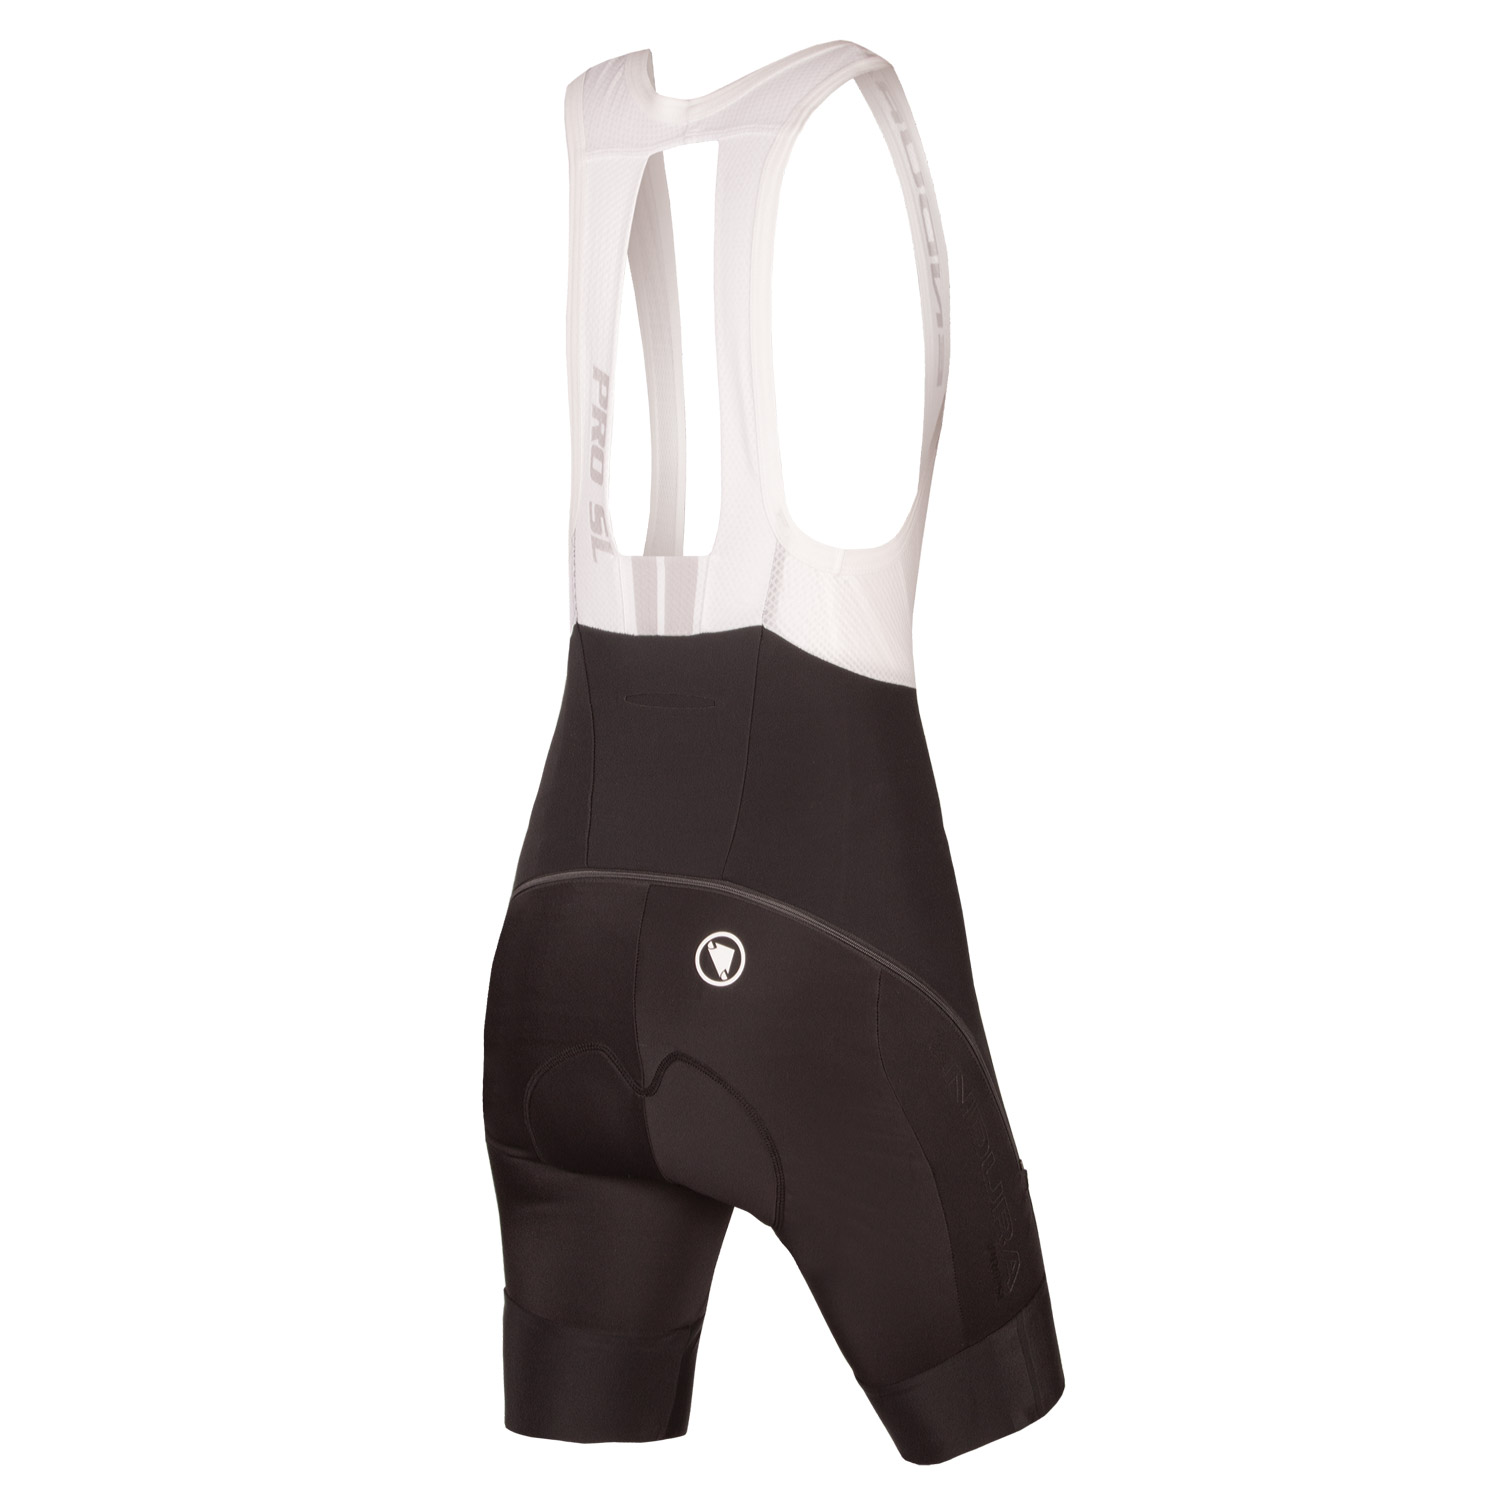 Women's Pro SL Bib Short DropSeat (Narrow-pad) Black